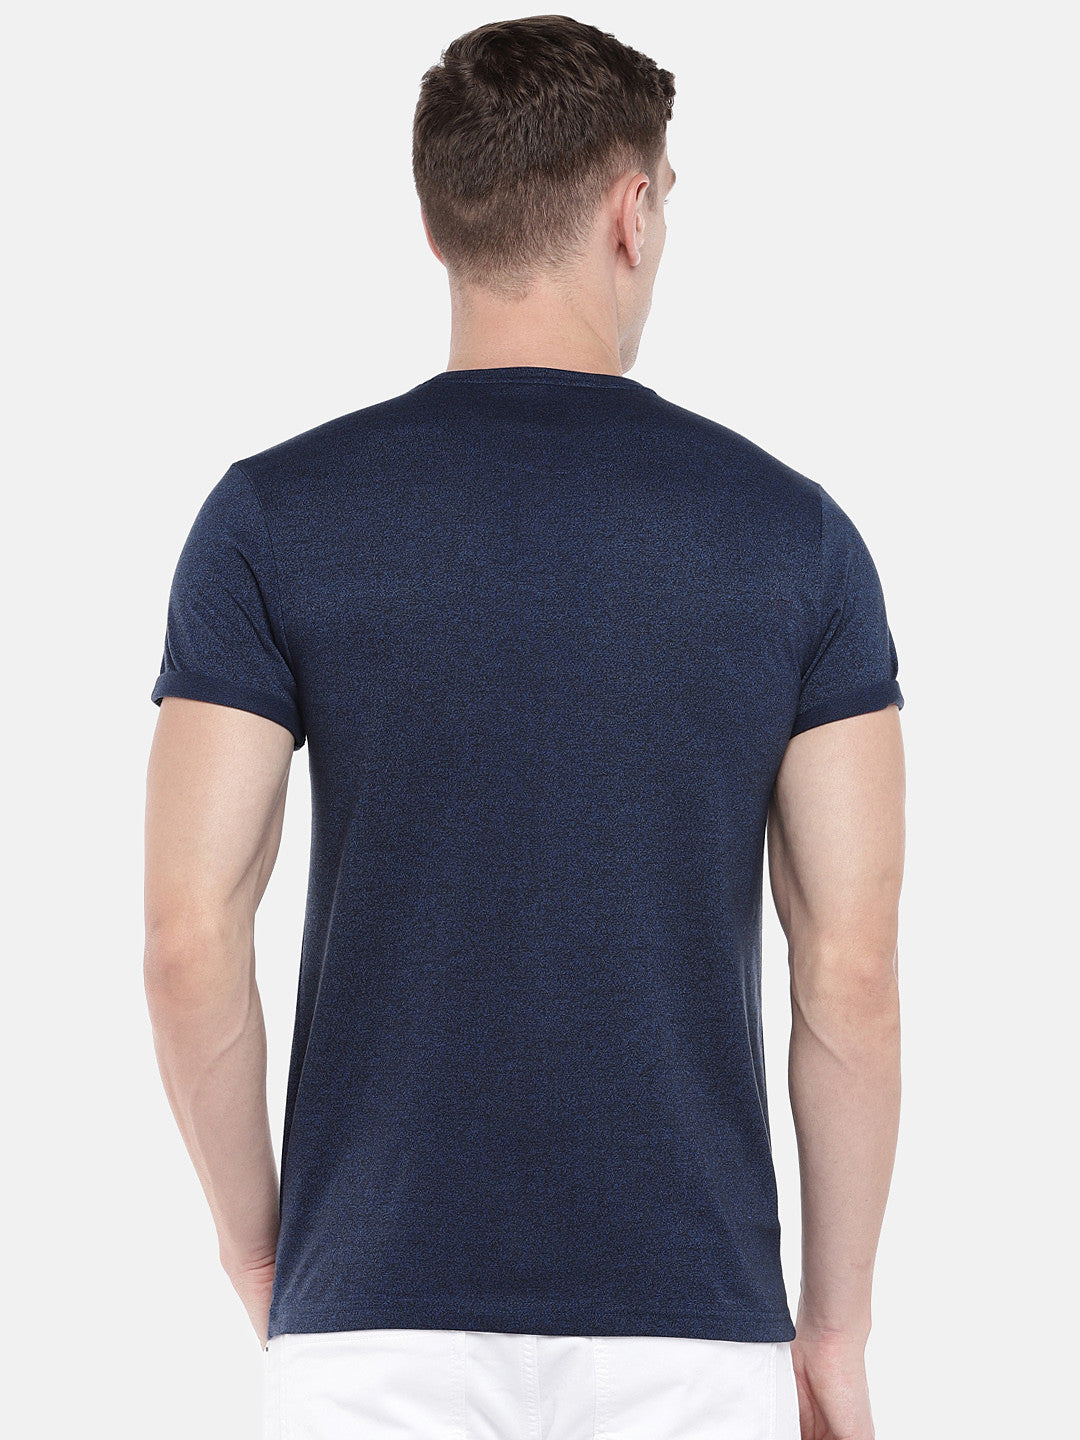 Navy Blue Solid Round Neck T-shirt-3